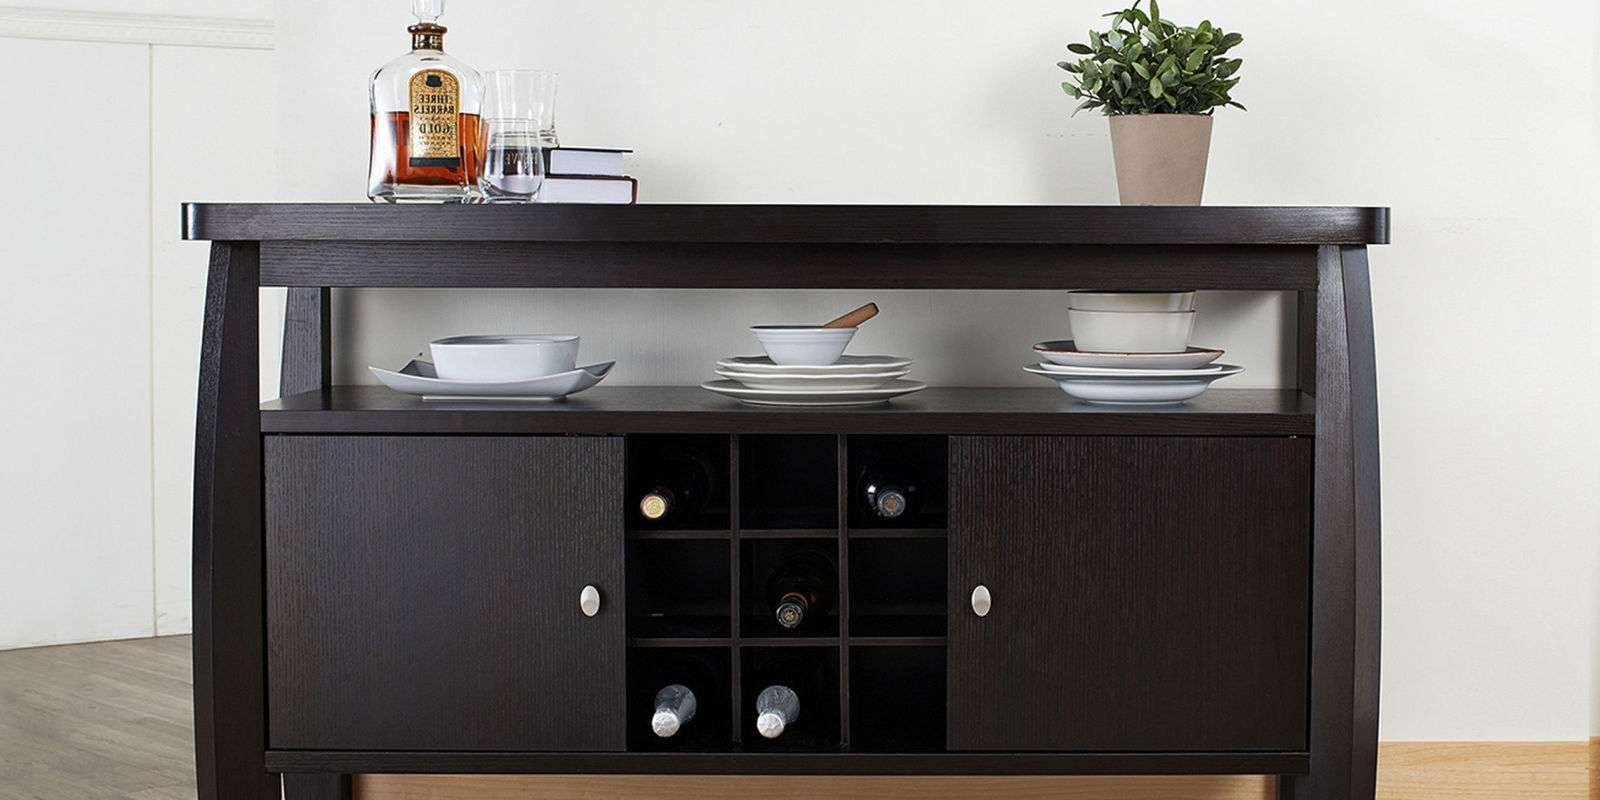 11 Best Sideboards And Buffets In 2018 – Reviews Of Sideboards Pertaining To Sideboards With Lights (View 1 of 20)